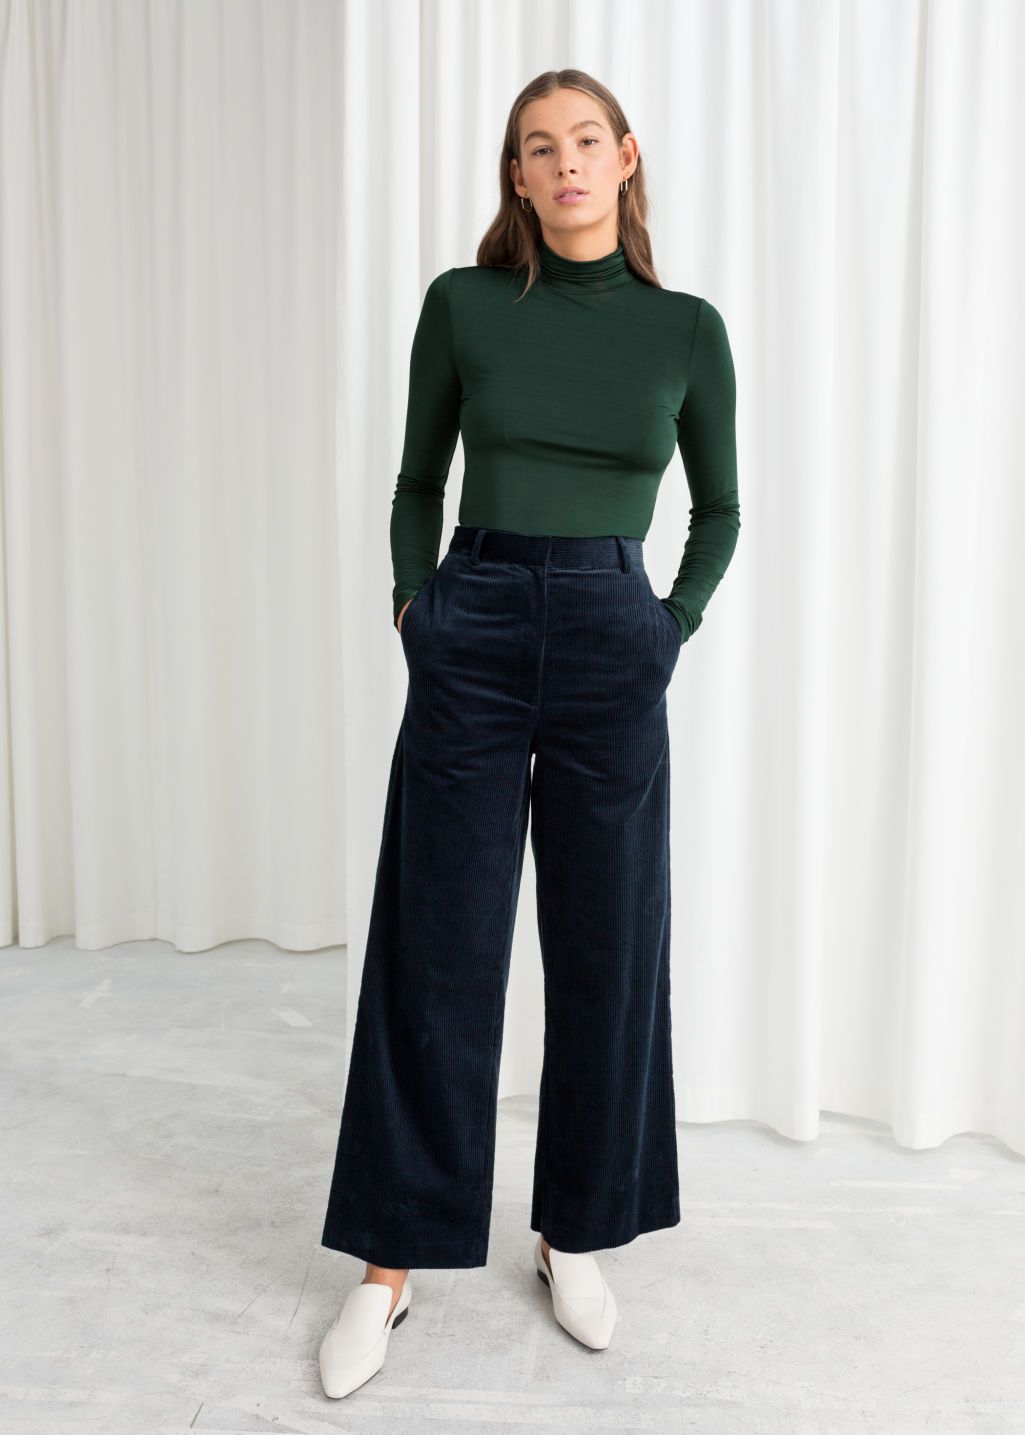 Corduroy Blue Jacket And Wide Pants   Outfit